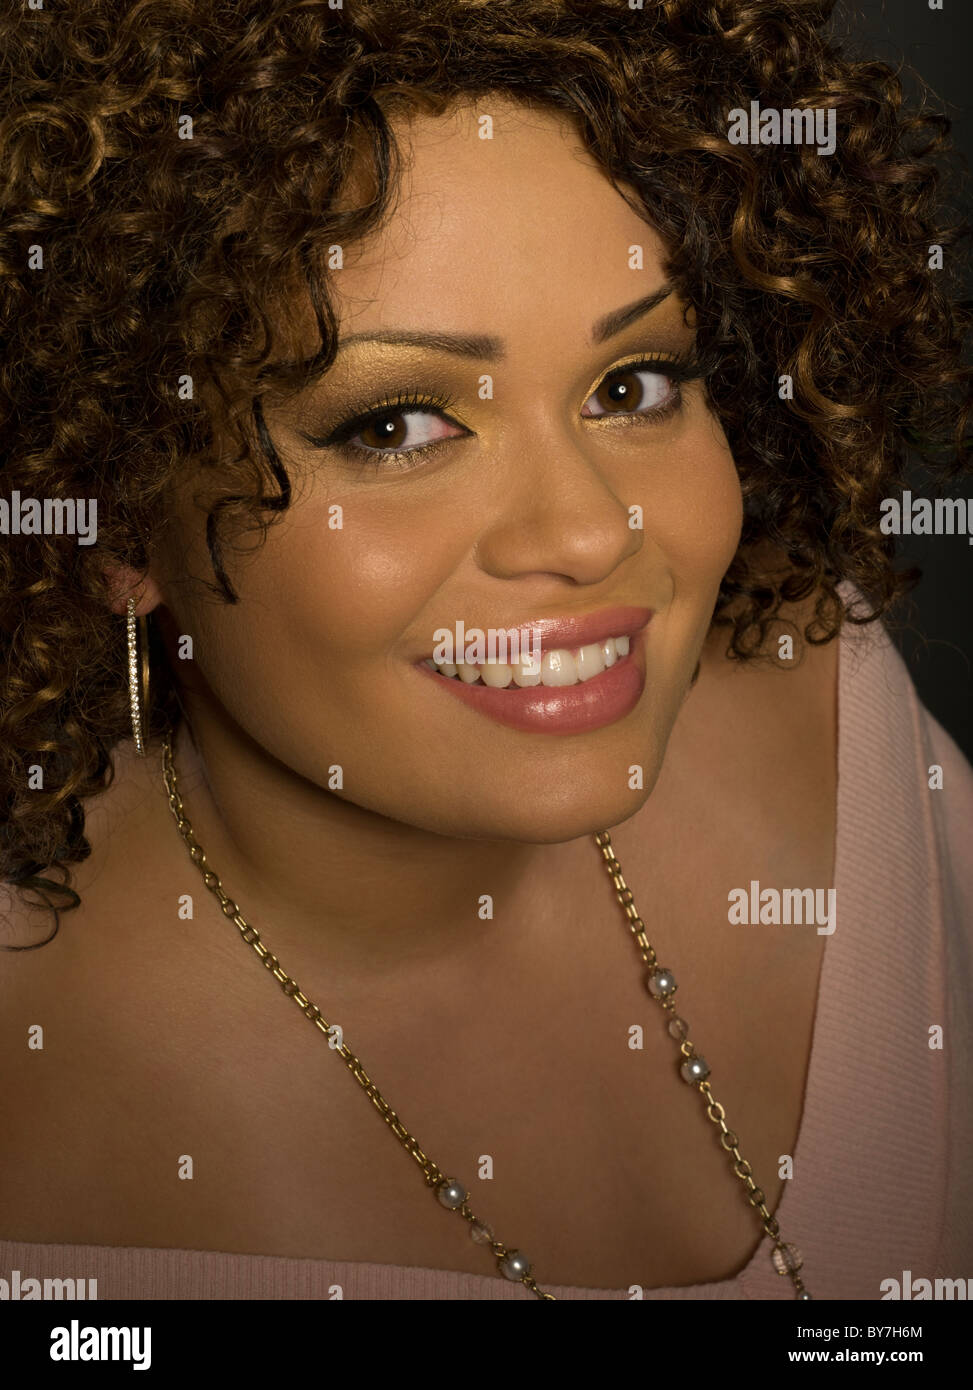 Beautiful Puerto Rican / Bronx  Woman Portrait - Stock Image